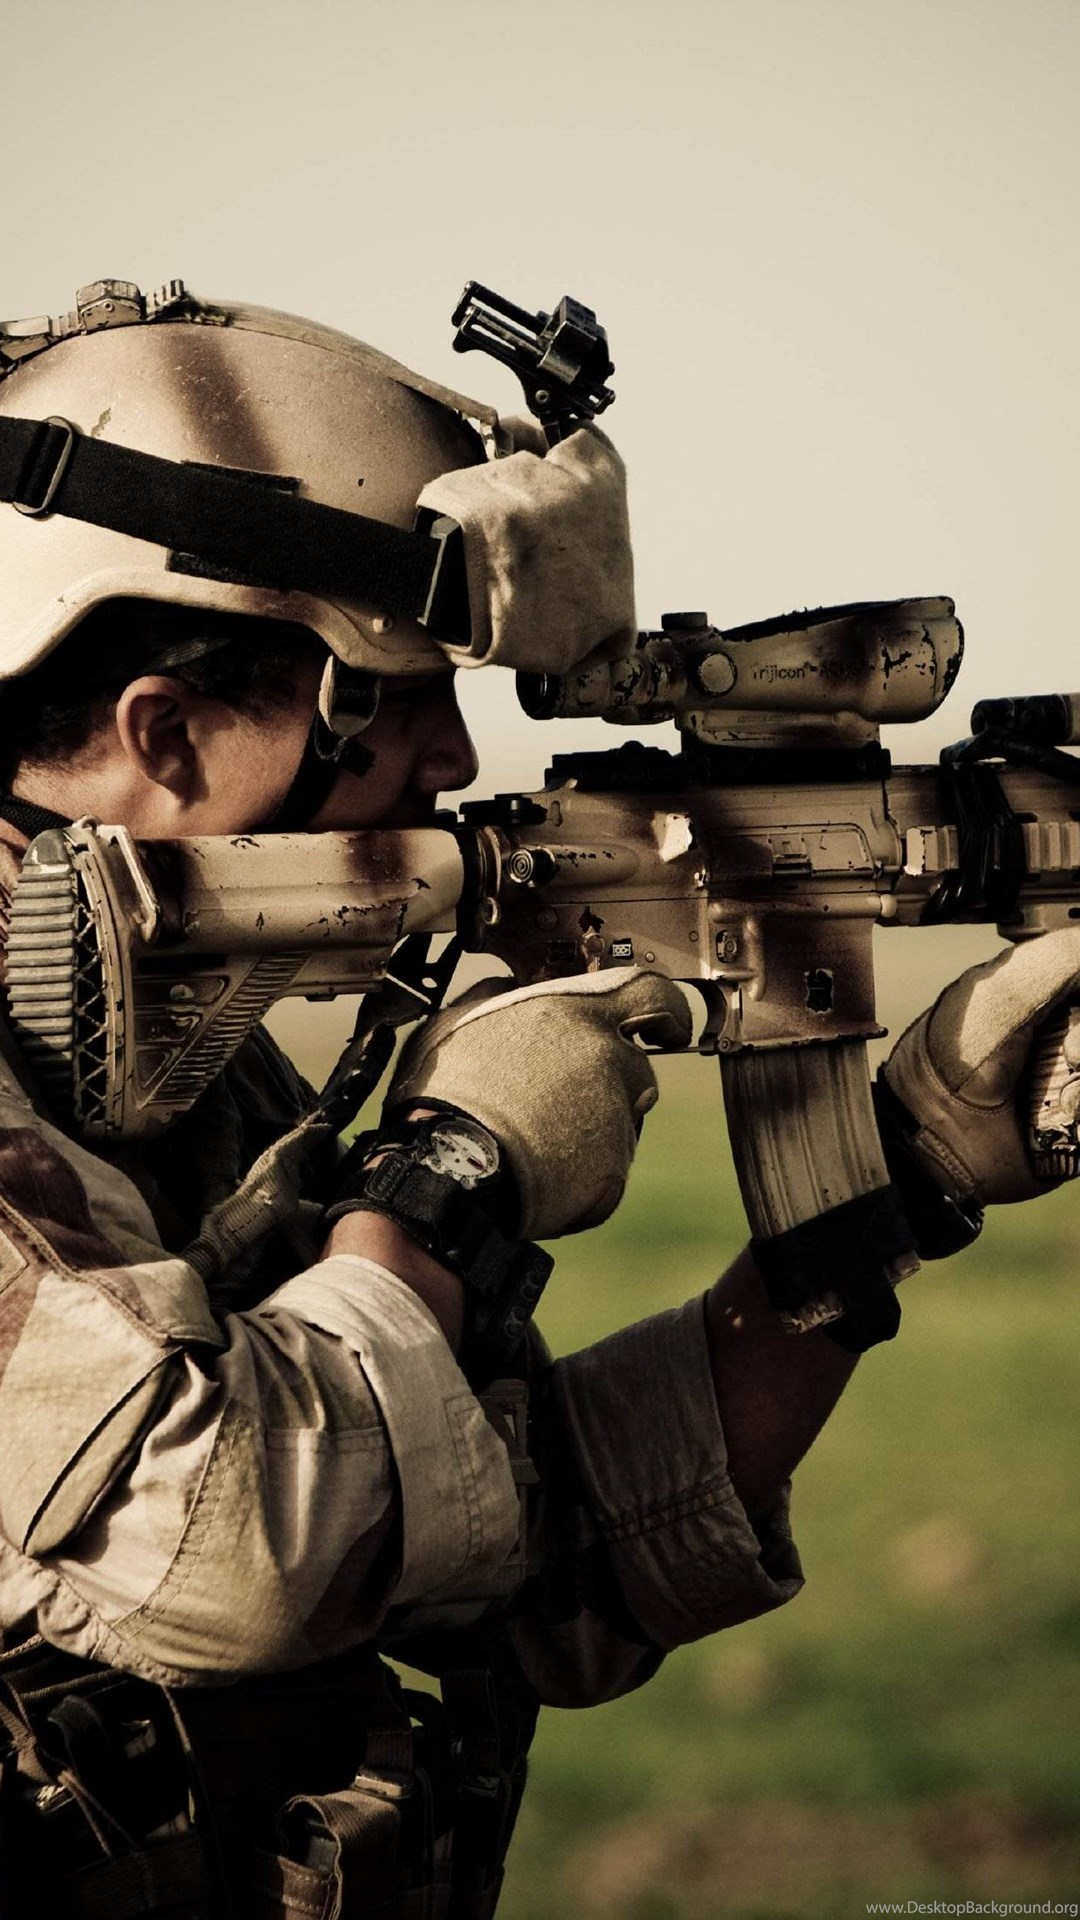 Special Forces Iphone Wallpaper Sniper Army Photography Wallpapers Hd Desktop Background